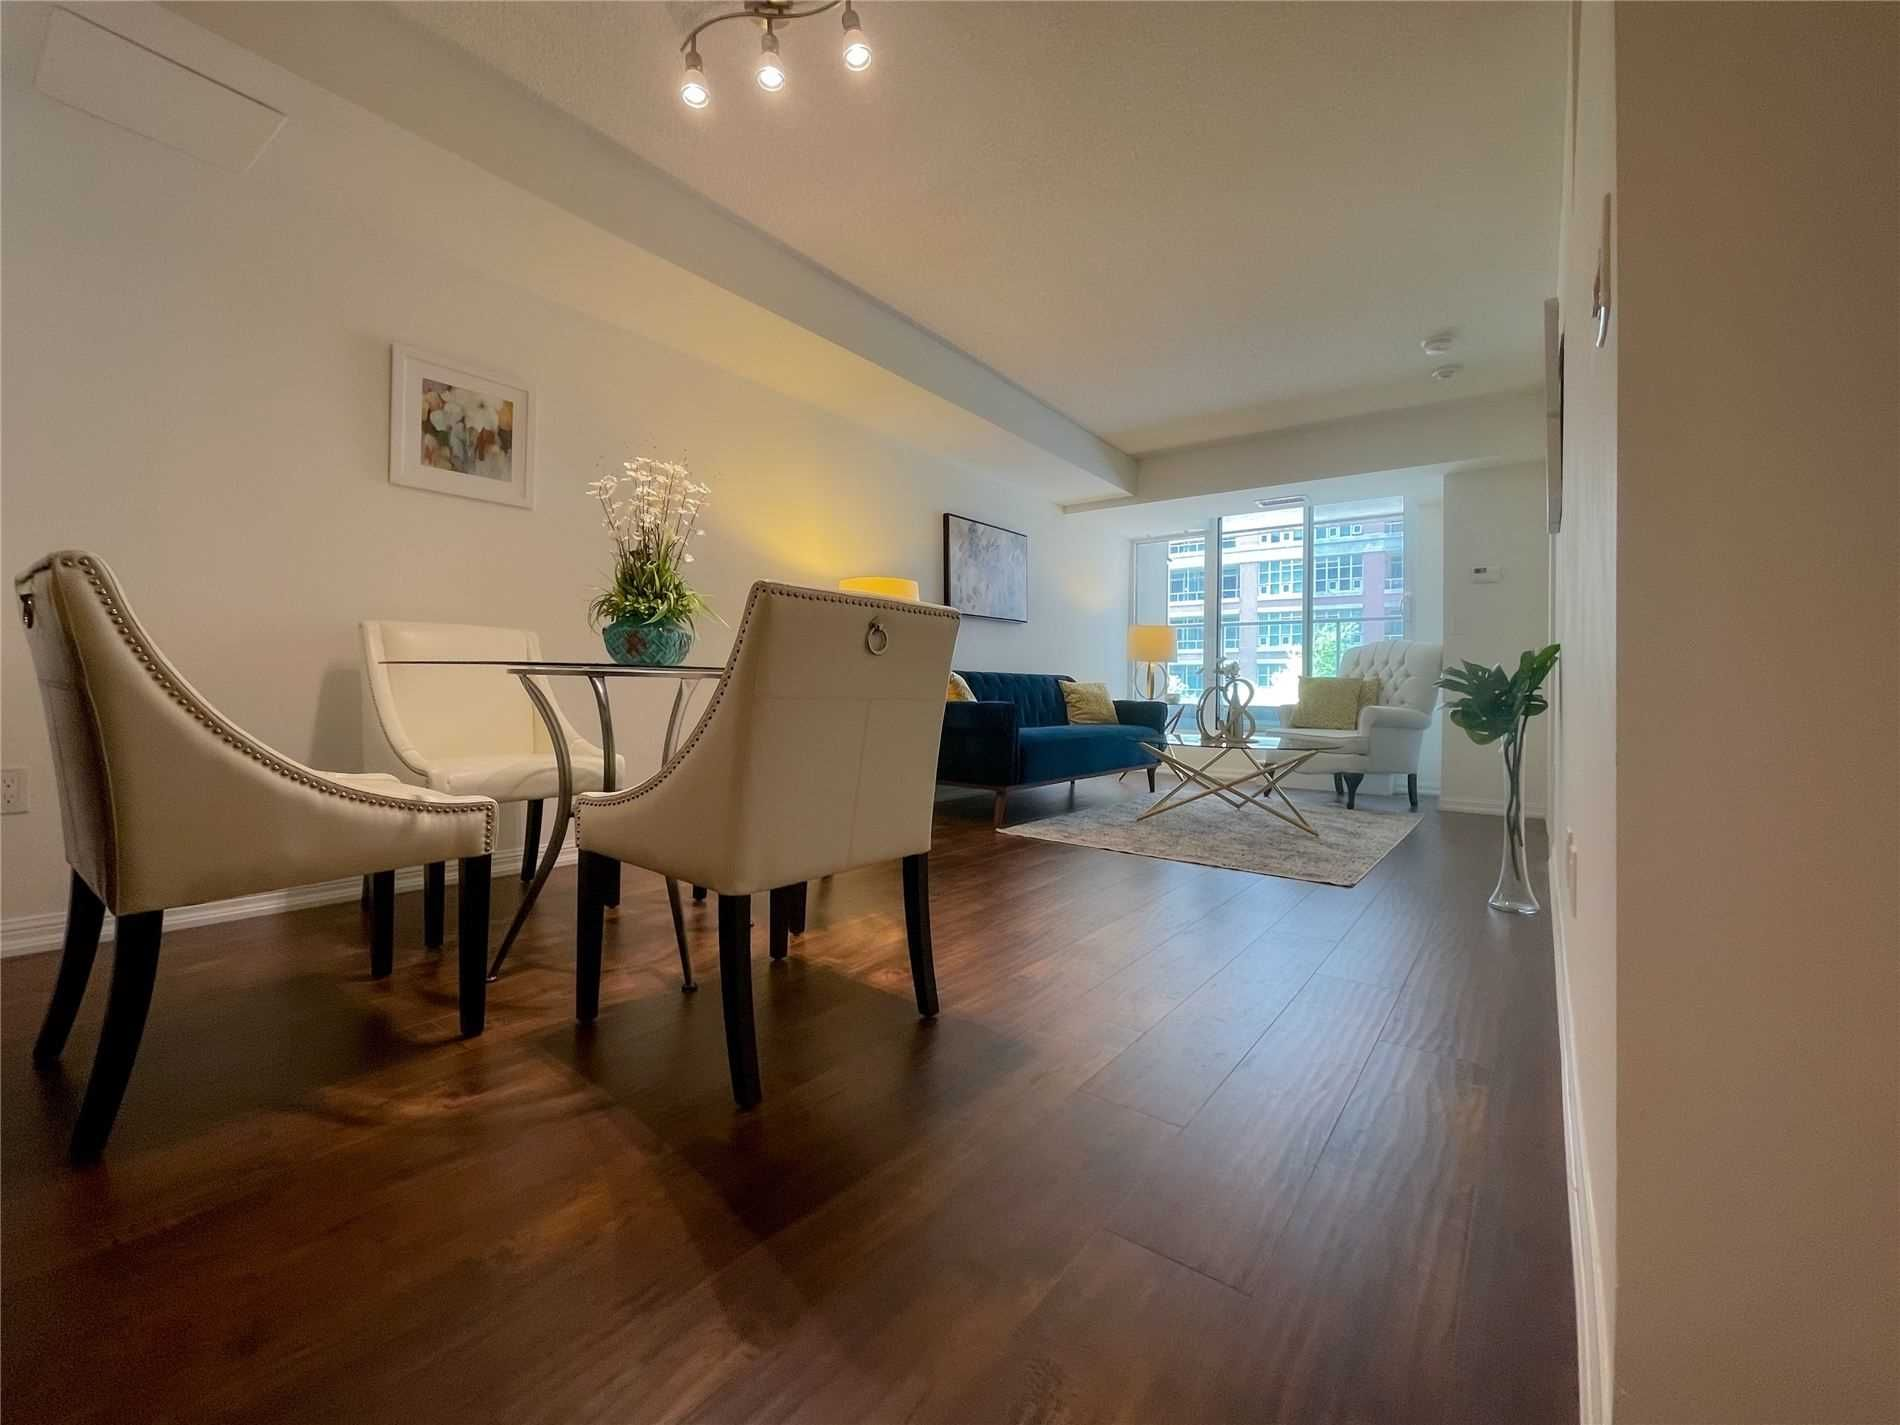 75 East Liberty St, unit 412 for sale in Toronto - image #2